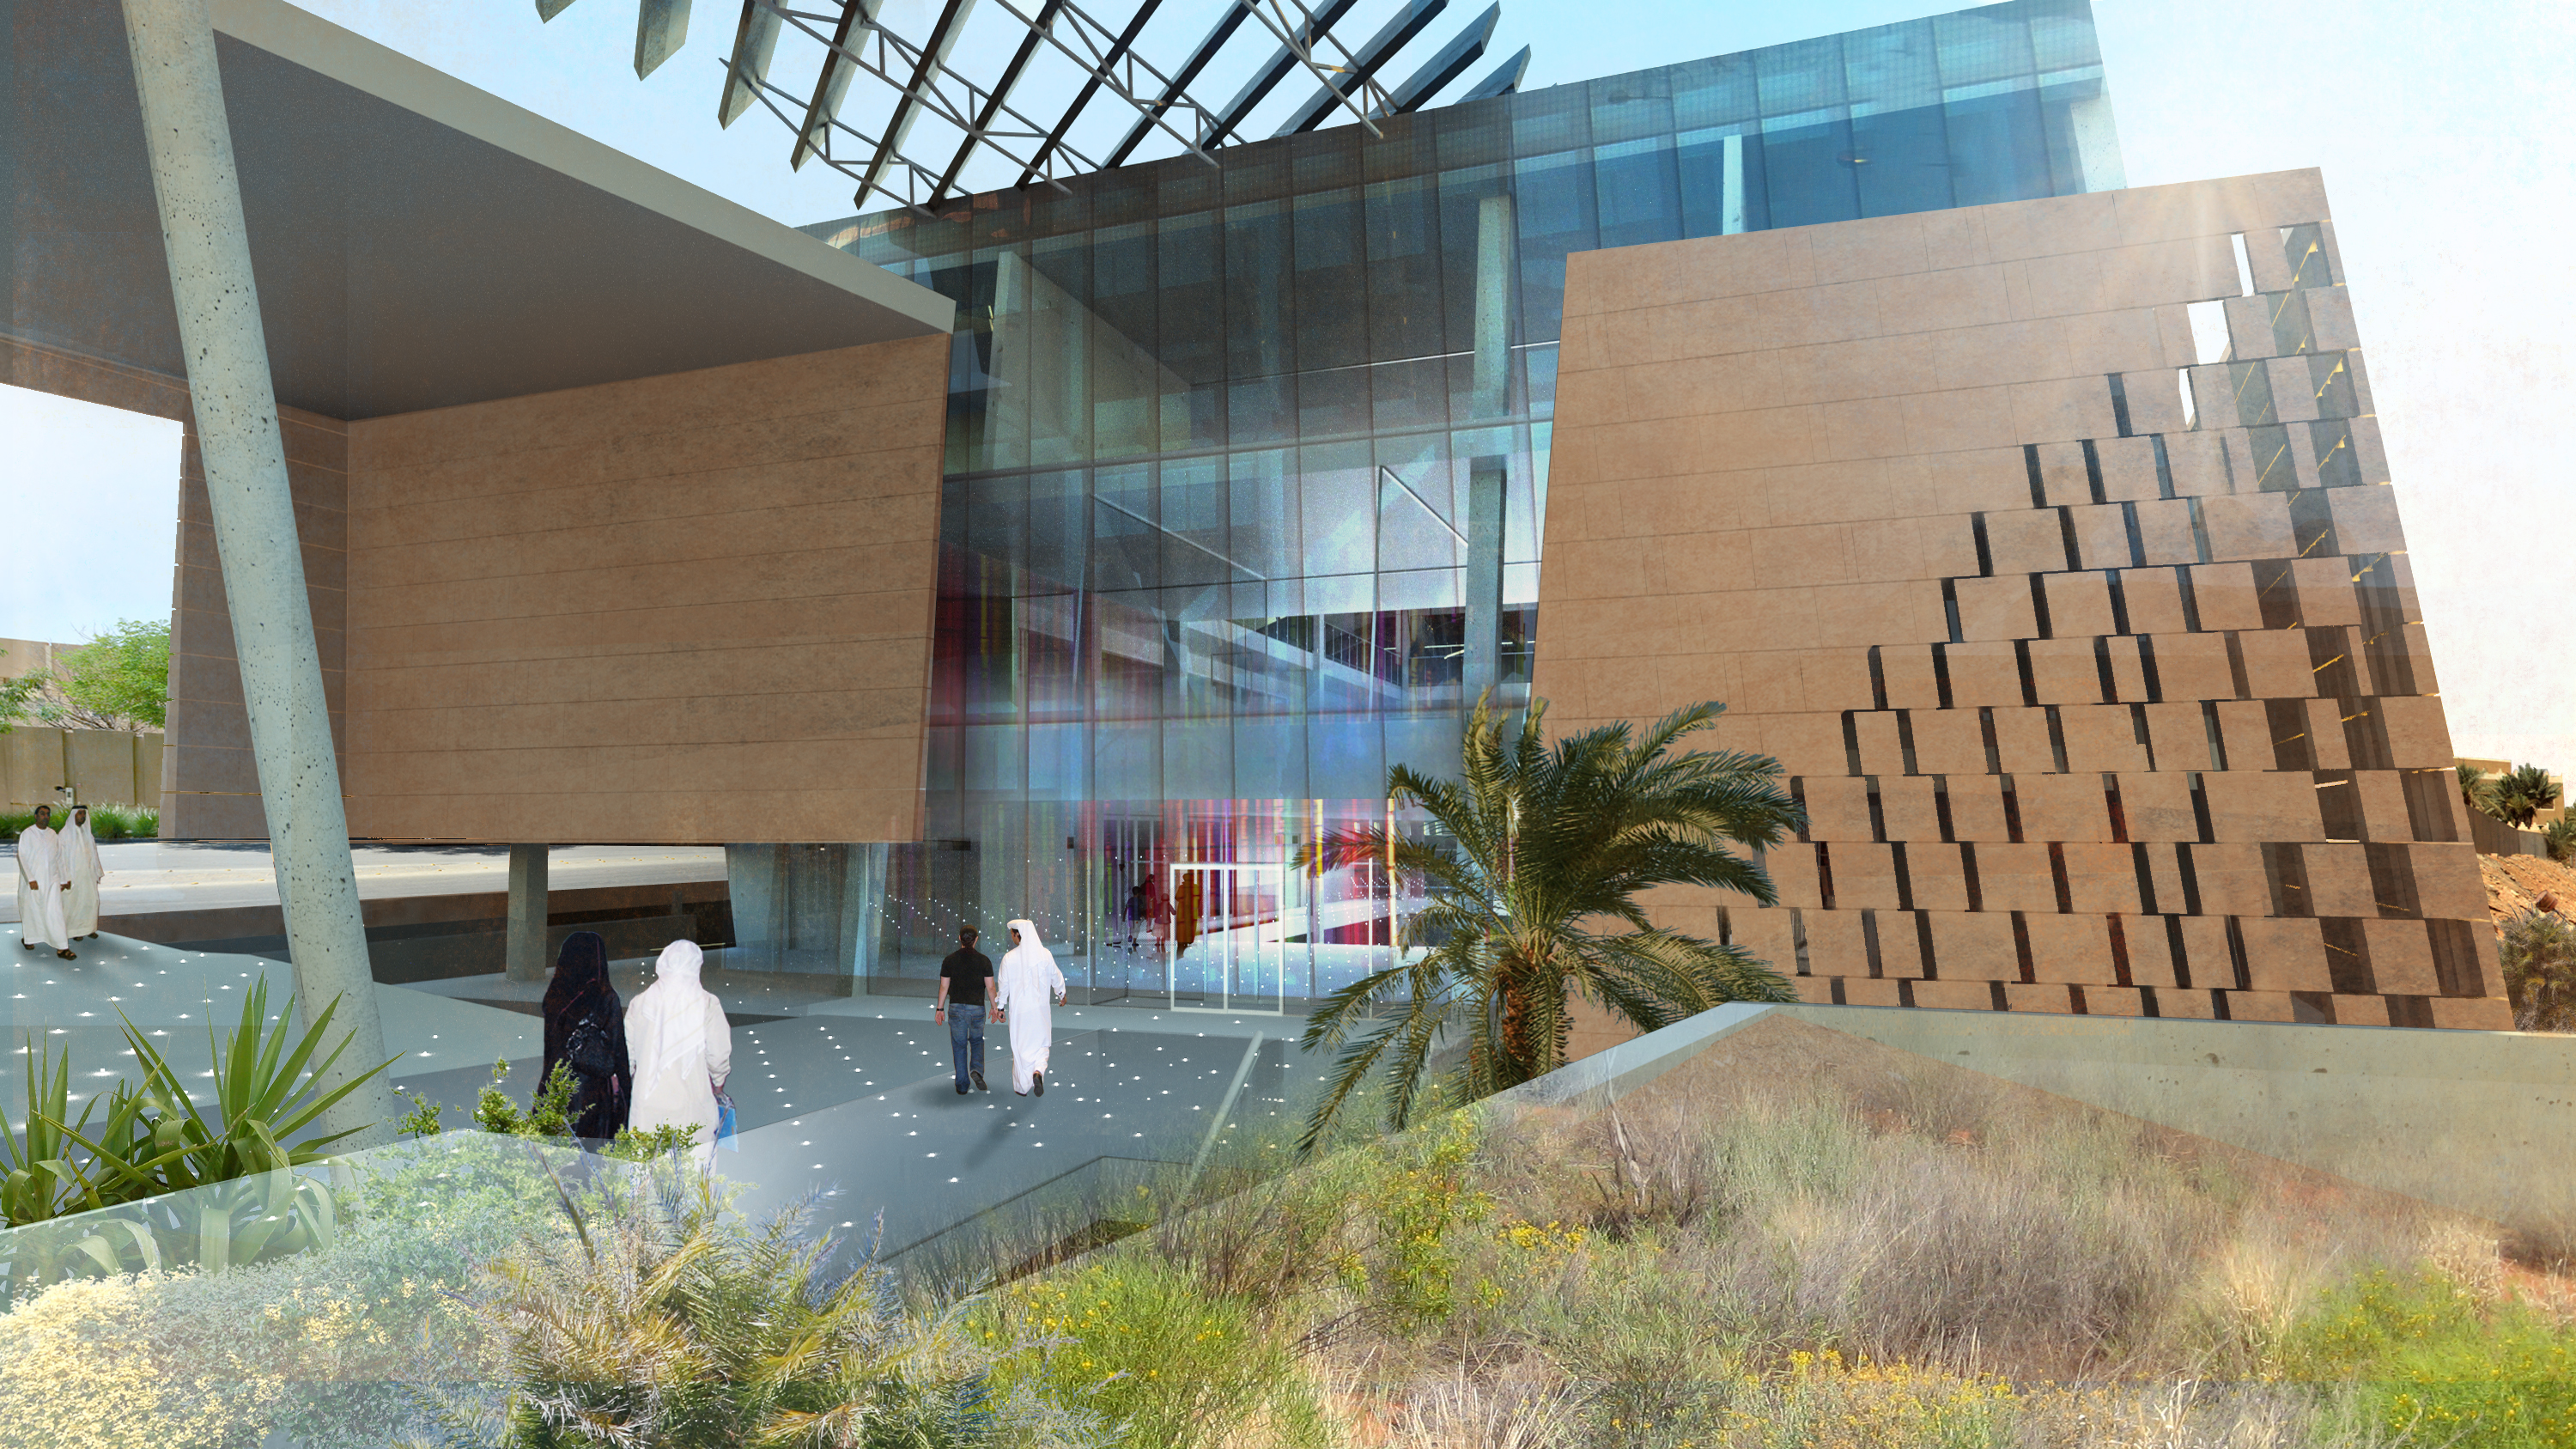 Addiriyah Art Center, Ad Diriyah, Saudi Arabia